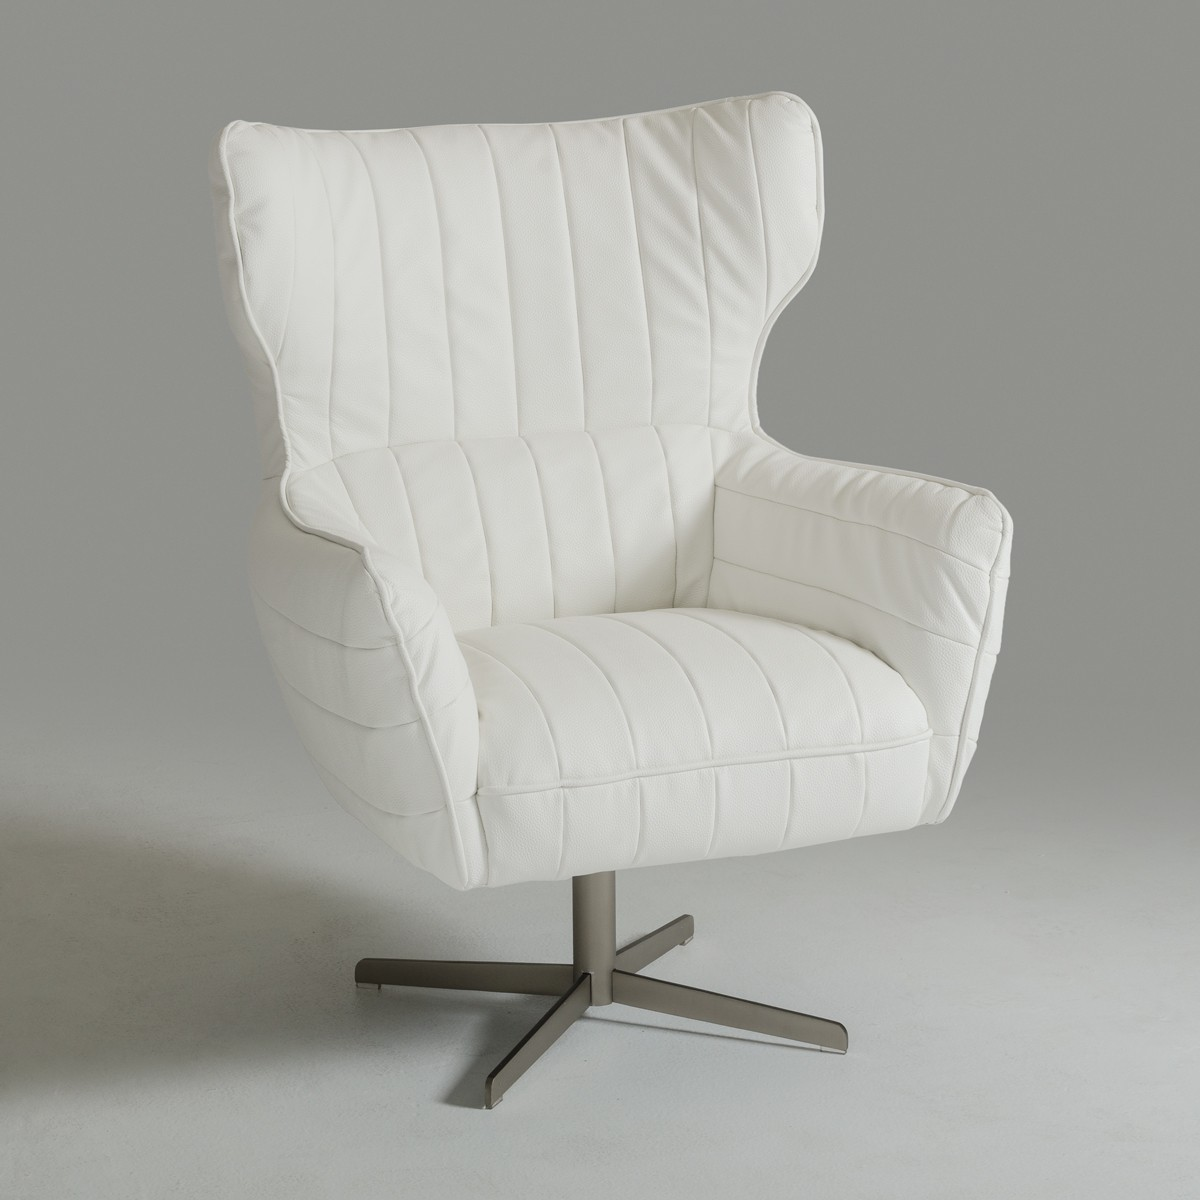 white leather swivel armchair white leather swivel accent chair charlotte north carolina 22013 | white ecoleather swivel chair v casakylie 02